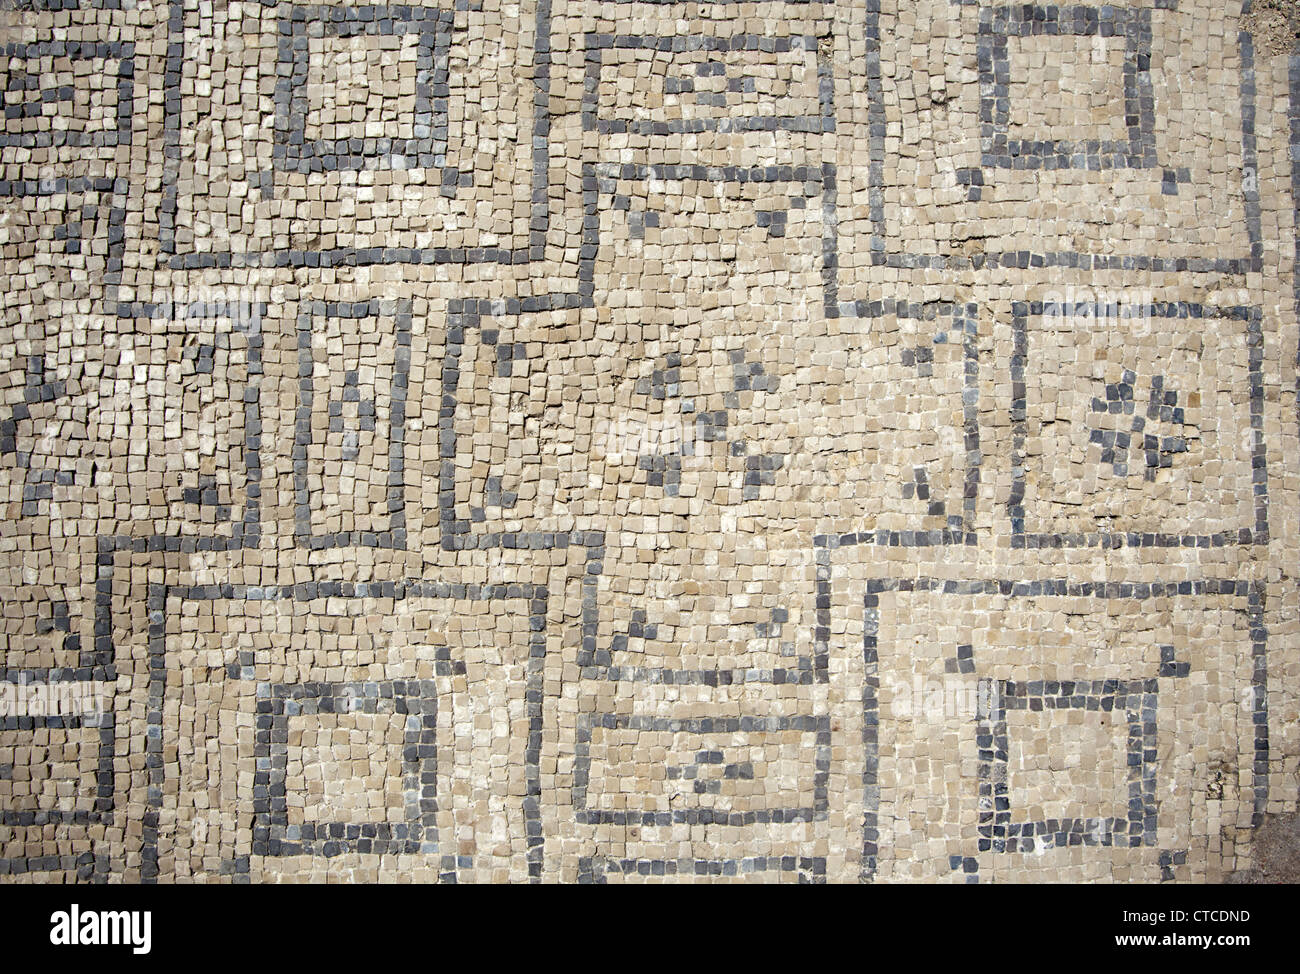 Floor tiles at an ancient roman bath at the archaeological site beit floor tiles at an ancient roman bath at the archaeological site beit shean national park israel dailygadgetfo Image collections